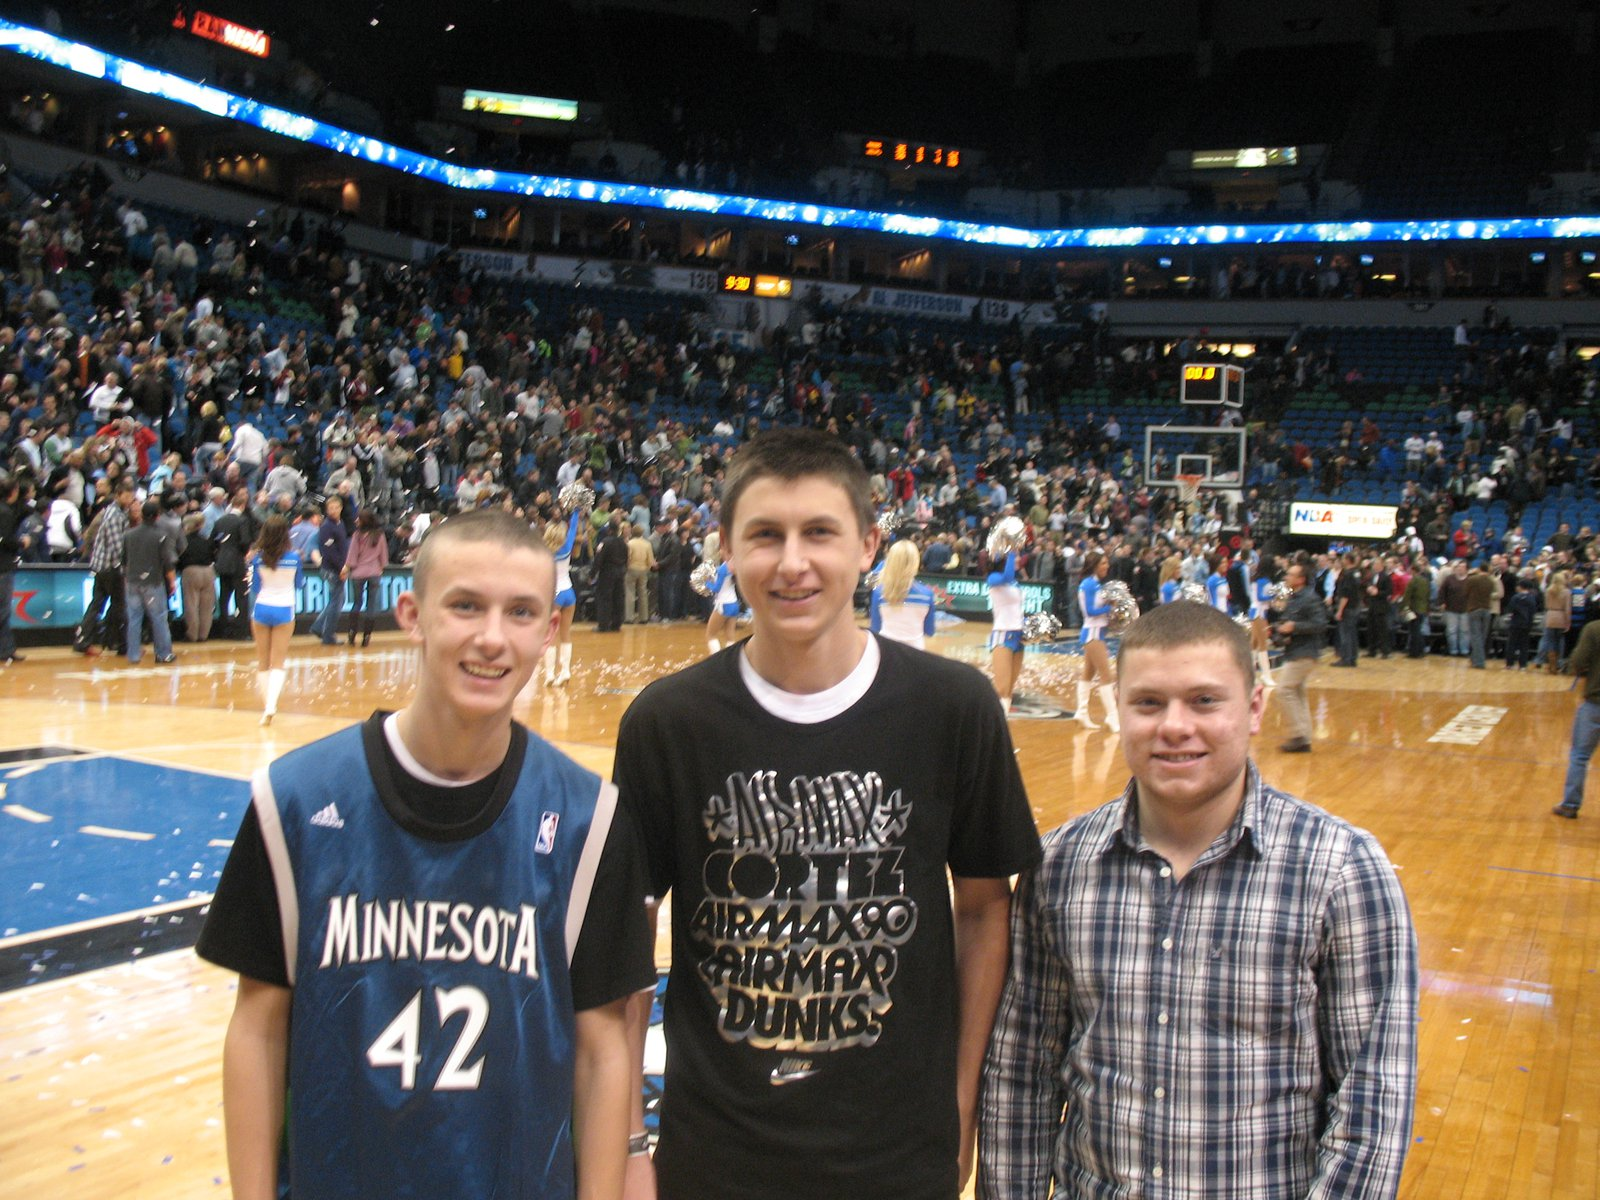 At the Timberwolves game.